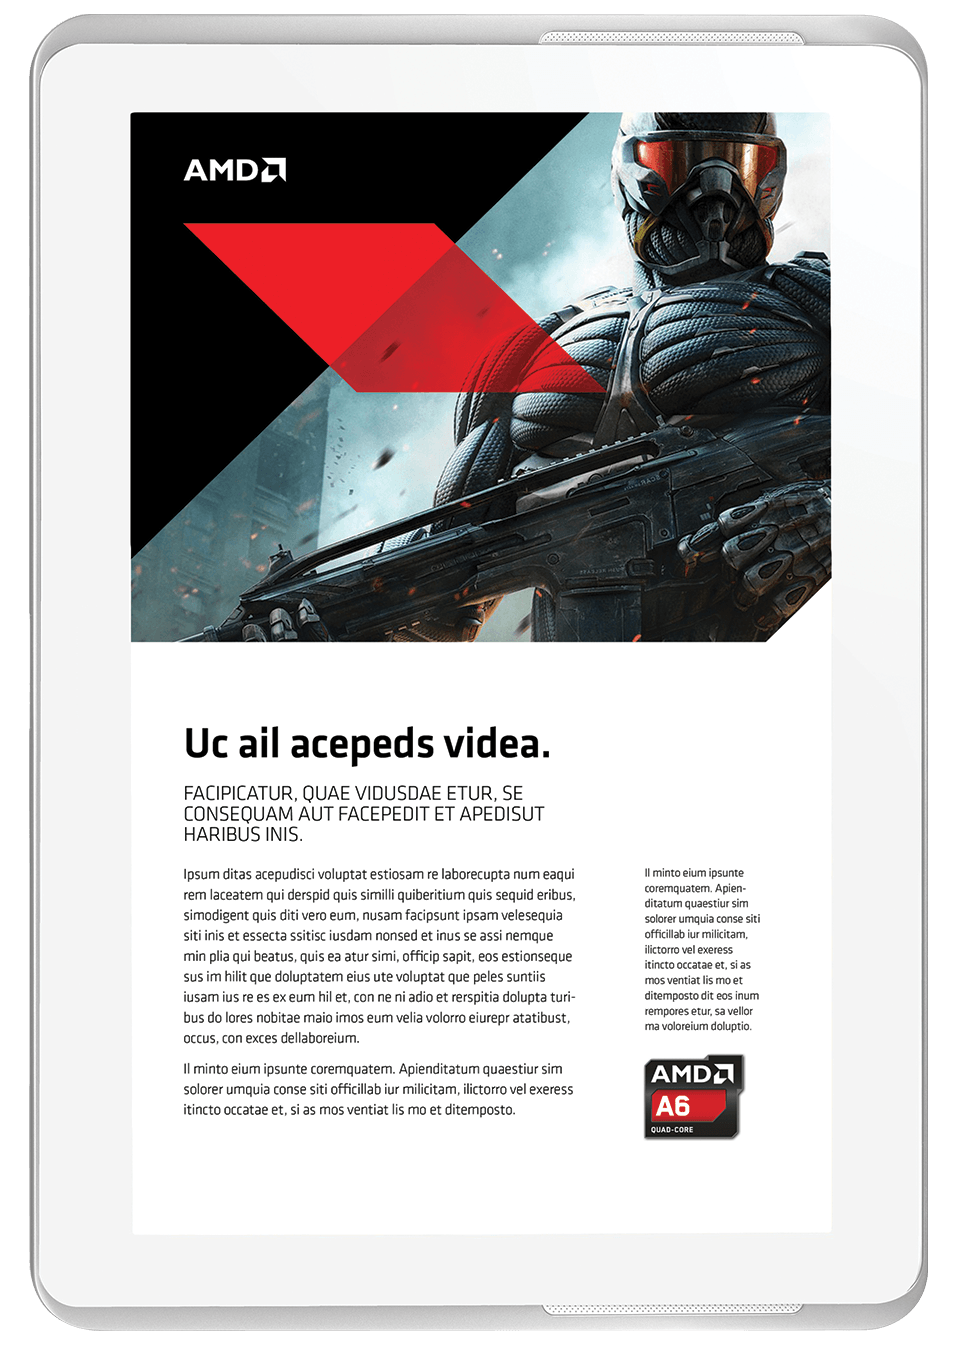 AMD_Tablet_01